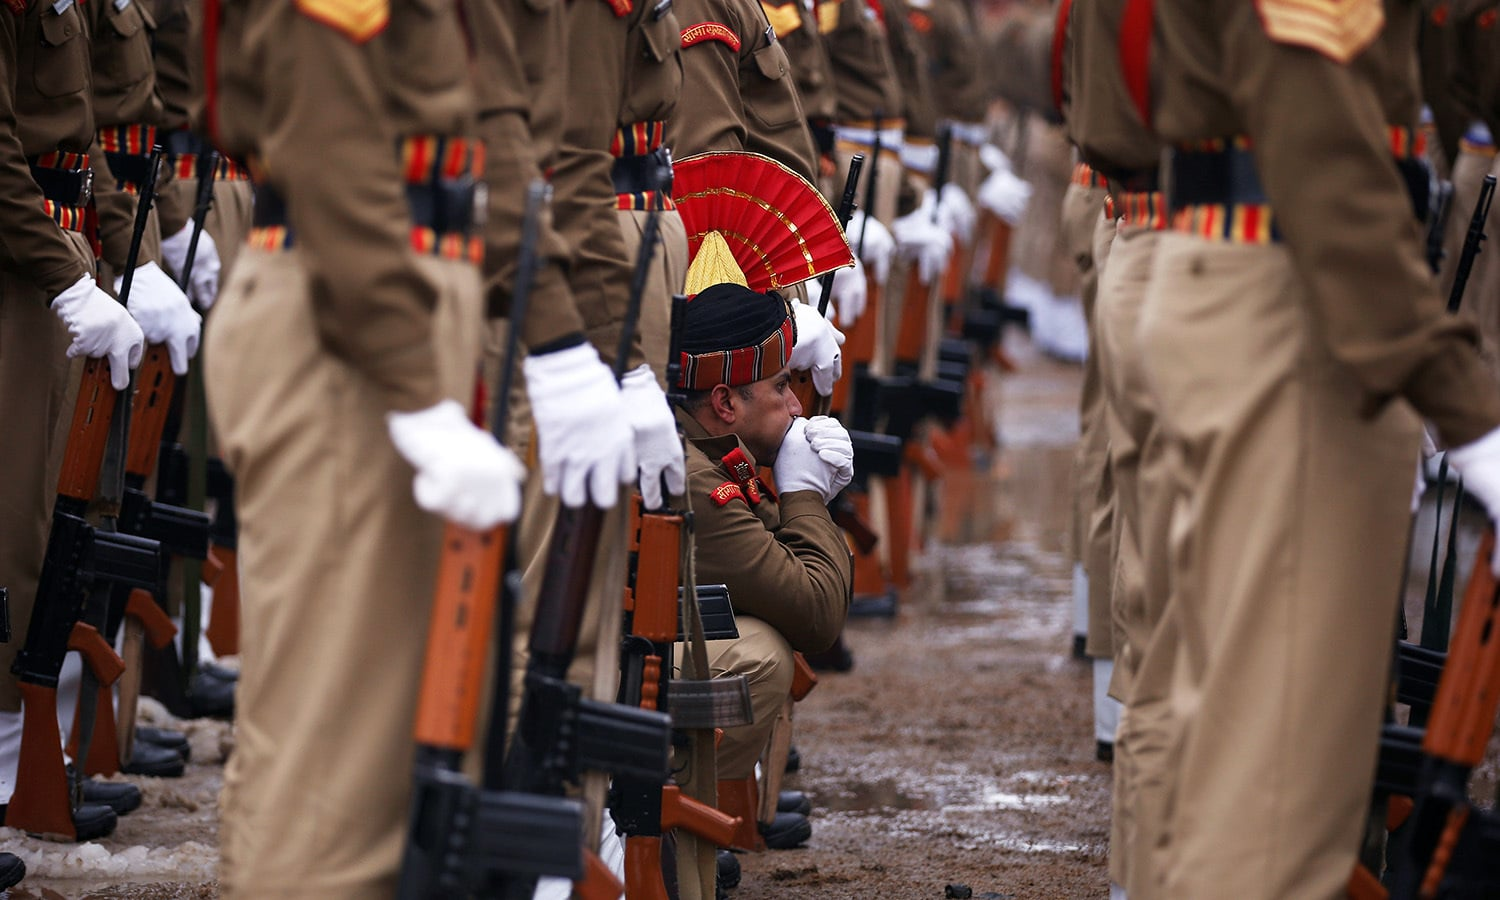 An Indian policeman blows warm air onto his hand as he takes part in a parade to celebrate India's Republic Day on a cold winter day in Srinagar, India-held Kashmir.— Reuters